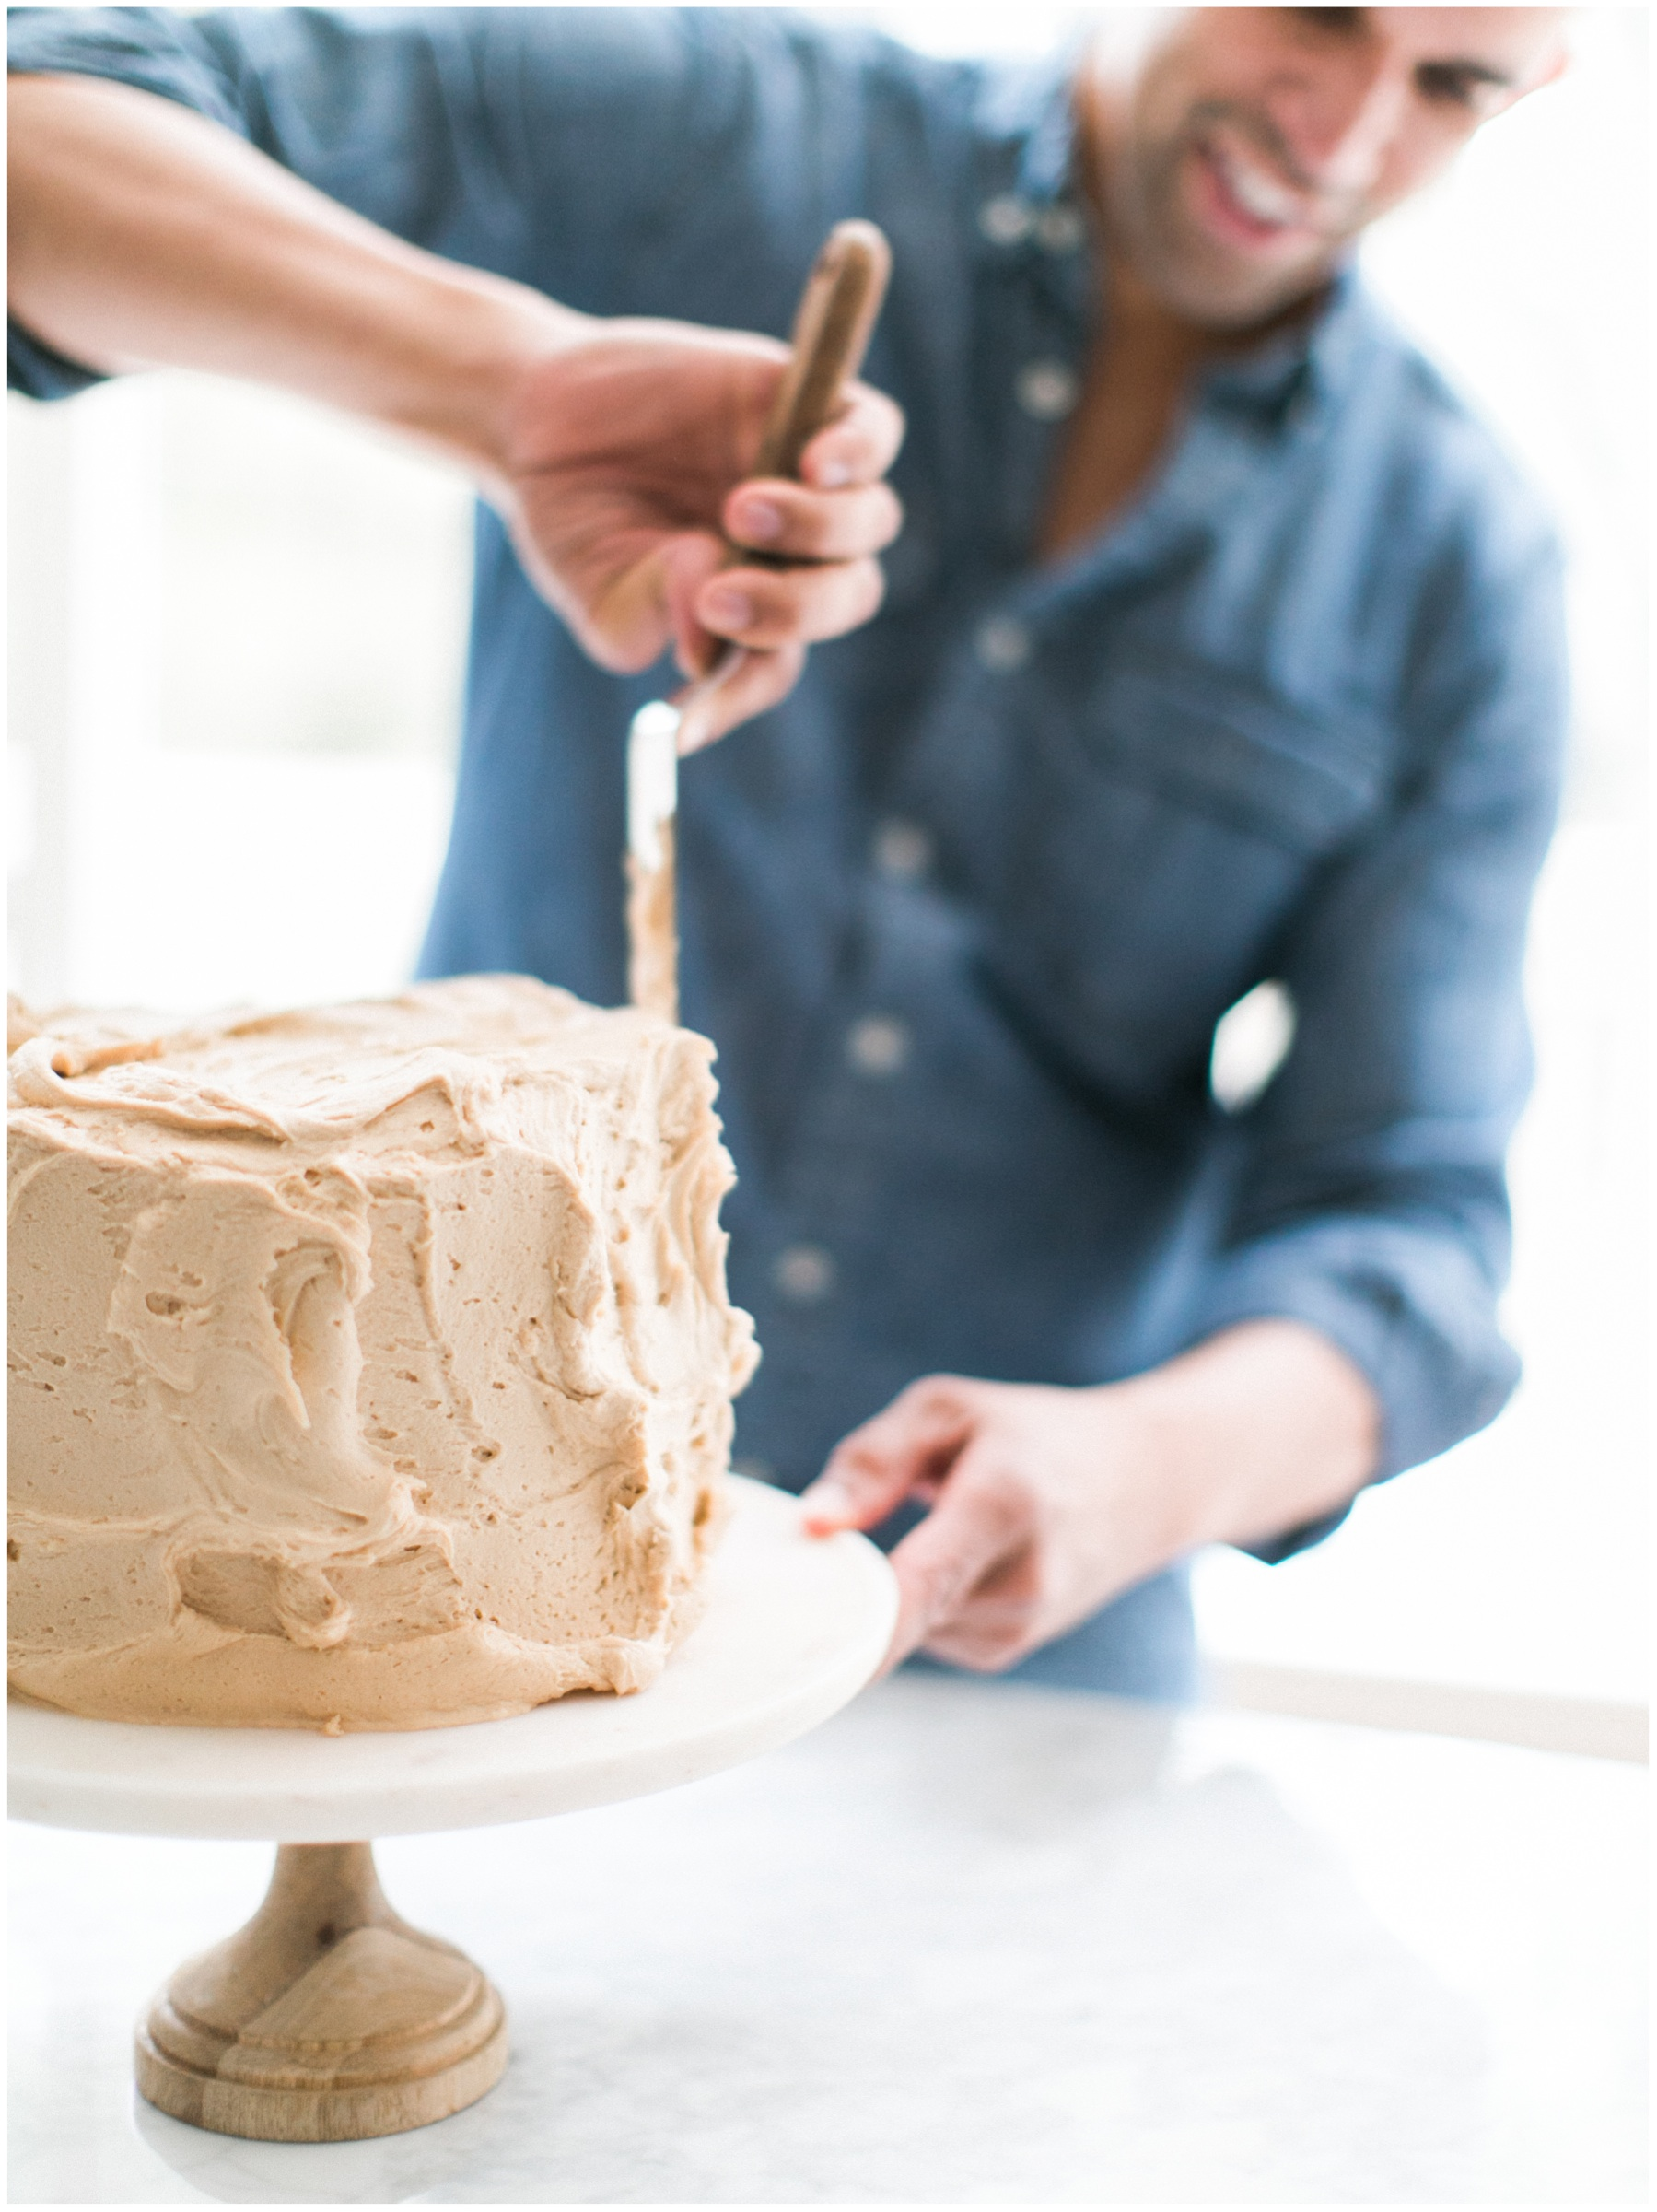 sinclair-and-moore-chocolate-peanutbutter-cake-24